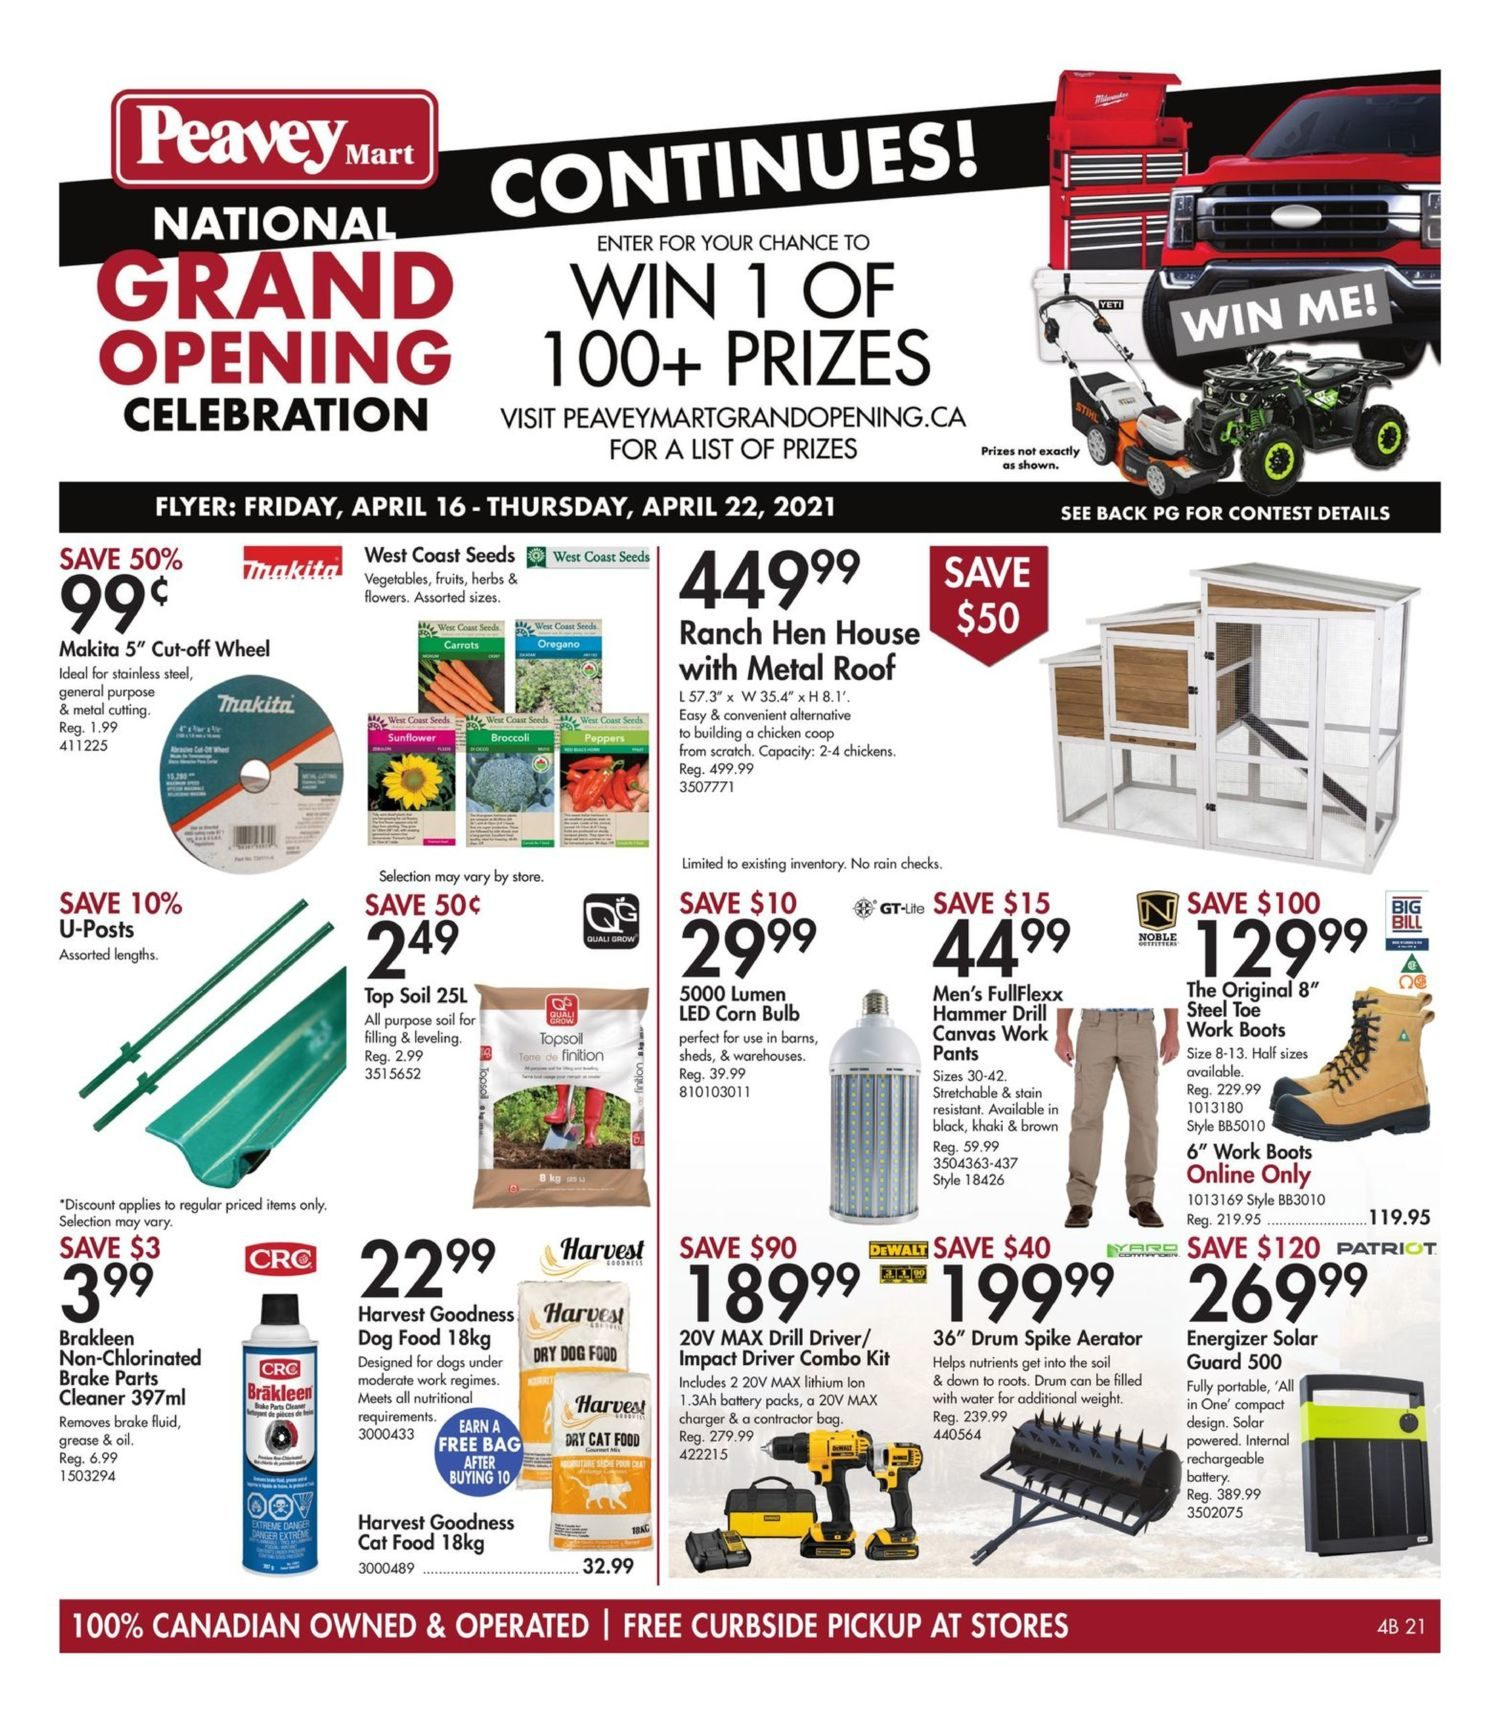 Peavey Mart - Weekly Flyer Specials - National Grand Opening Celebration